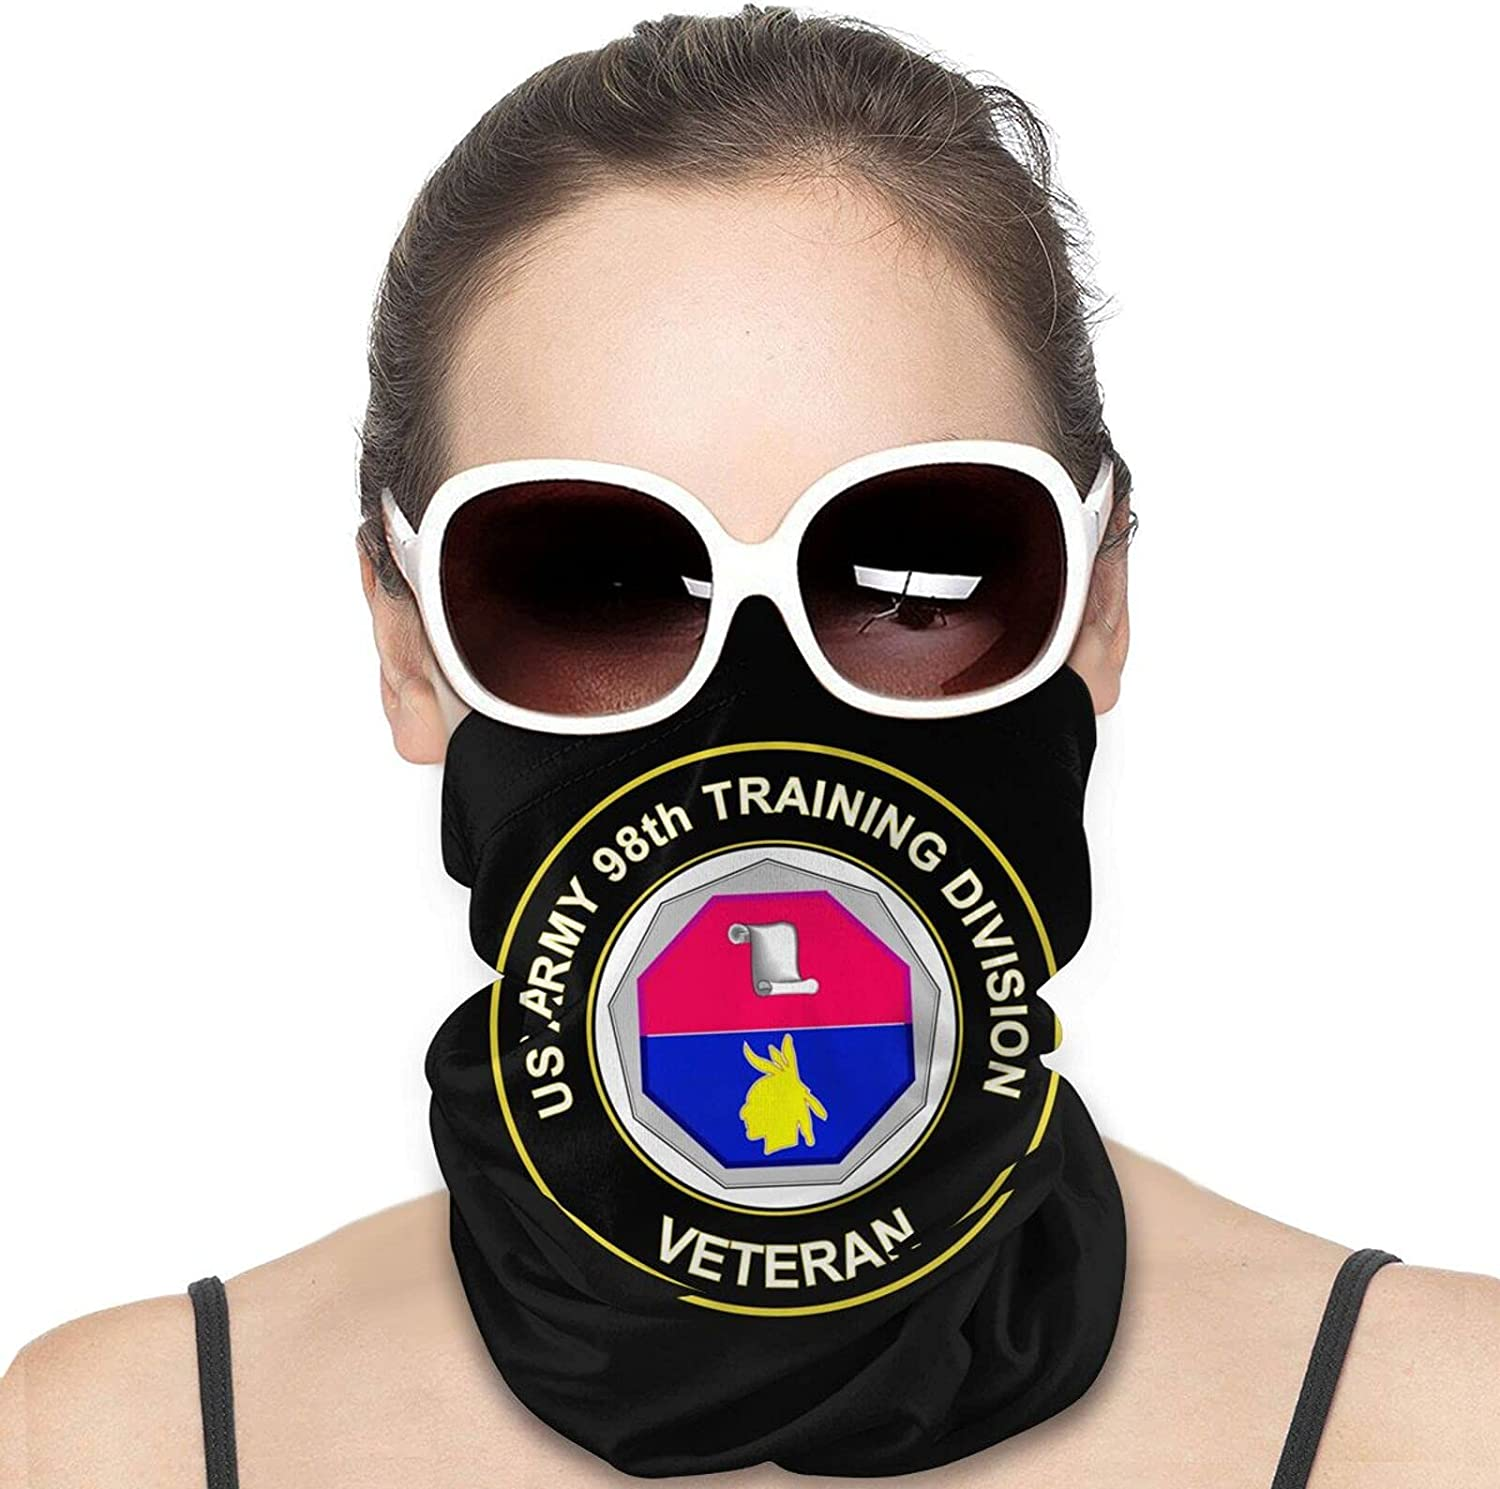 U.S. Army Veteran Training Division Unit Crest Round Neck Gaiter Bandnas Face Cover Uv Protection Prevent bask in Ice Scarf Headbands Perfect for Motorcycle Cycling Running Festival Raves Outdoors